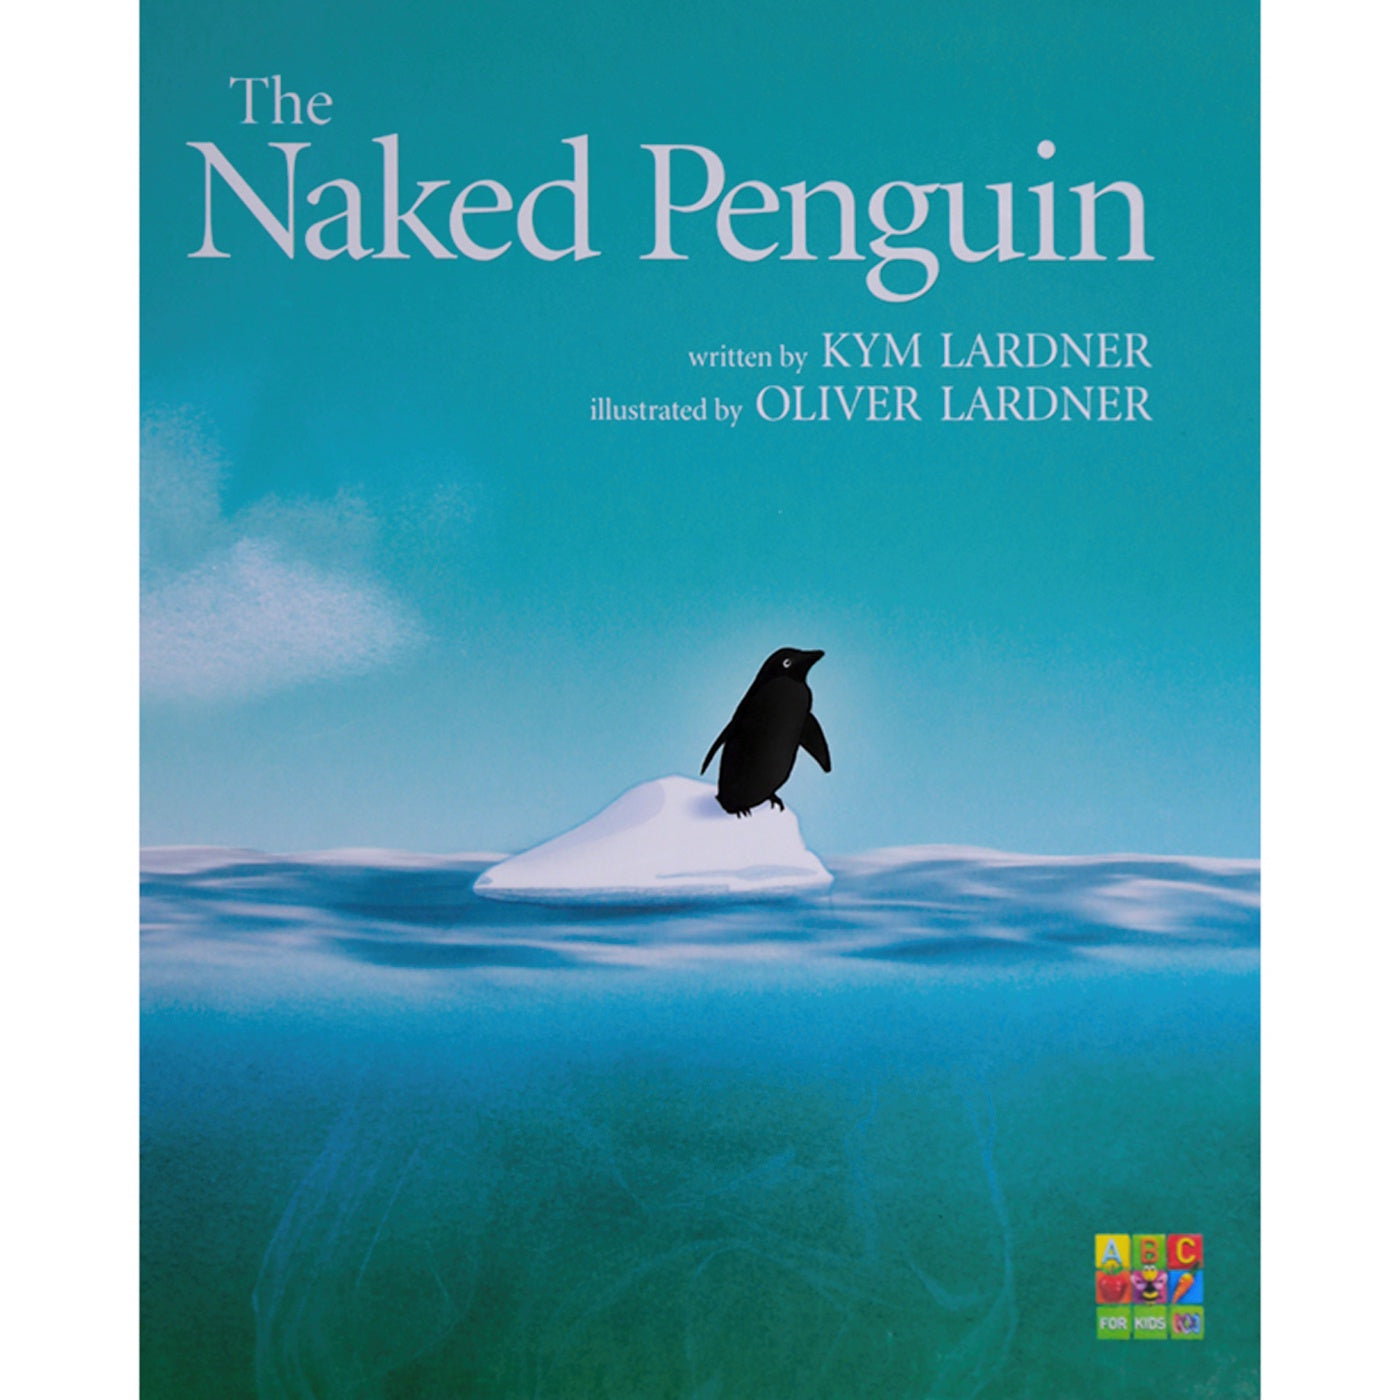 The Naked Penguin